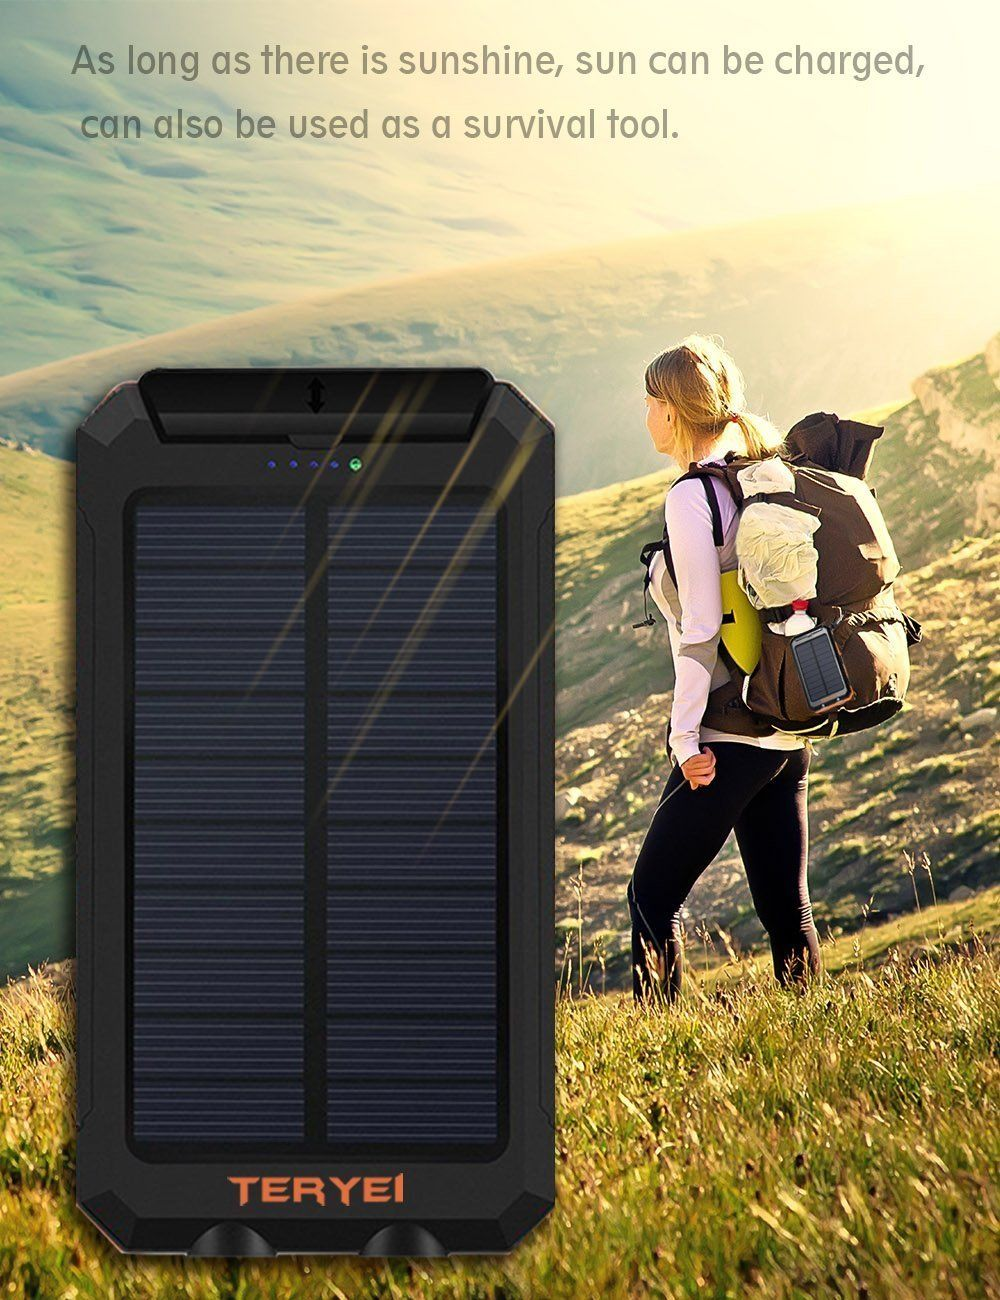 Solar Charger Teryei Solar Power Bank 15000mah External Backup Outdoor Cell Phone Battery Charger Wit Solar Power Bank Cell Phone Battery Charger Solar Charger